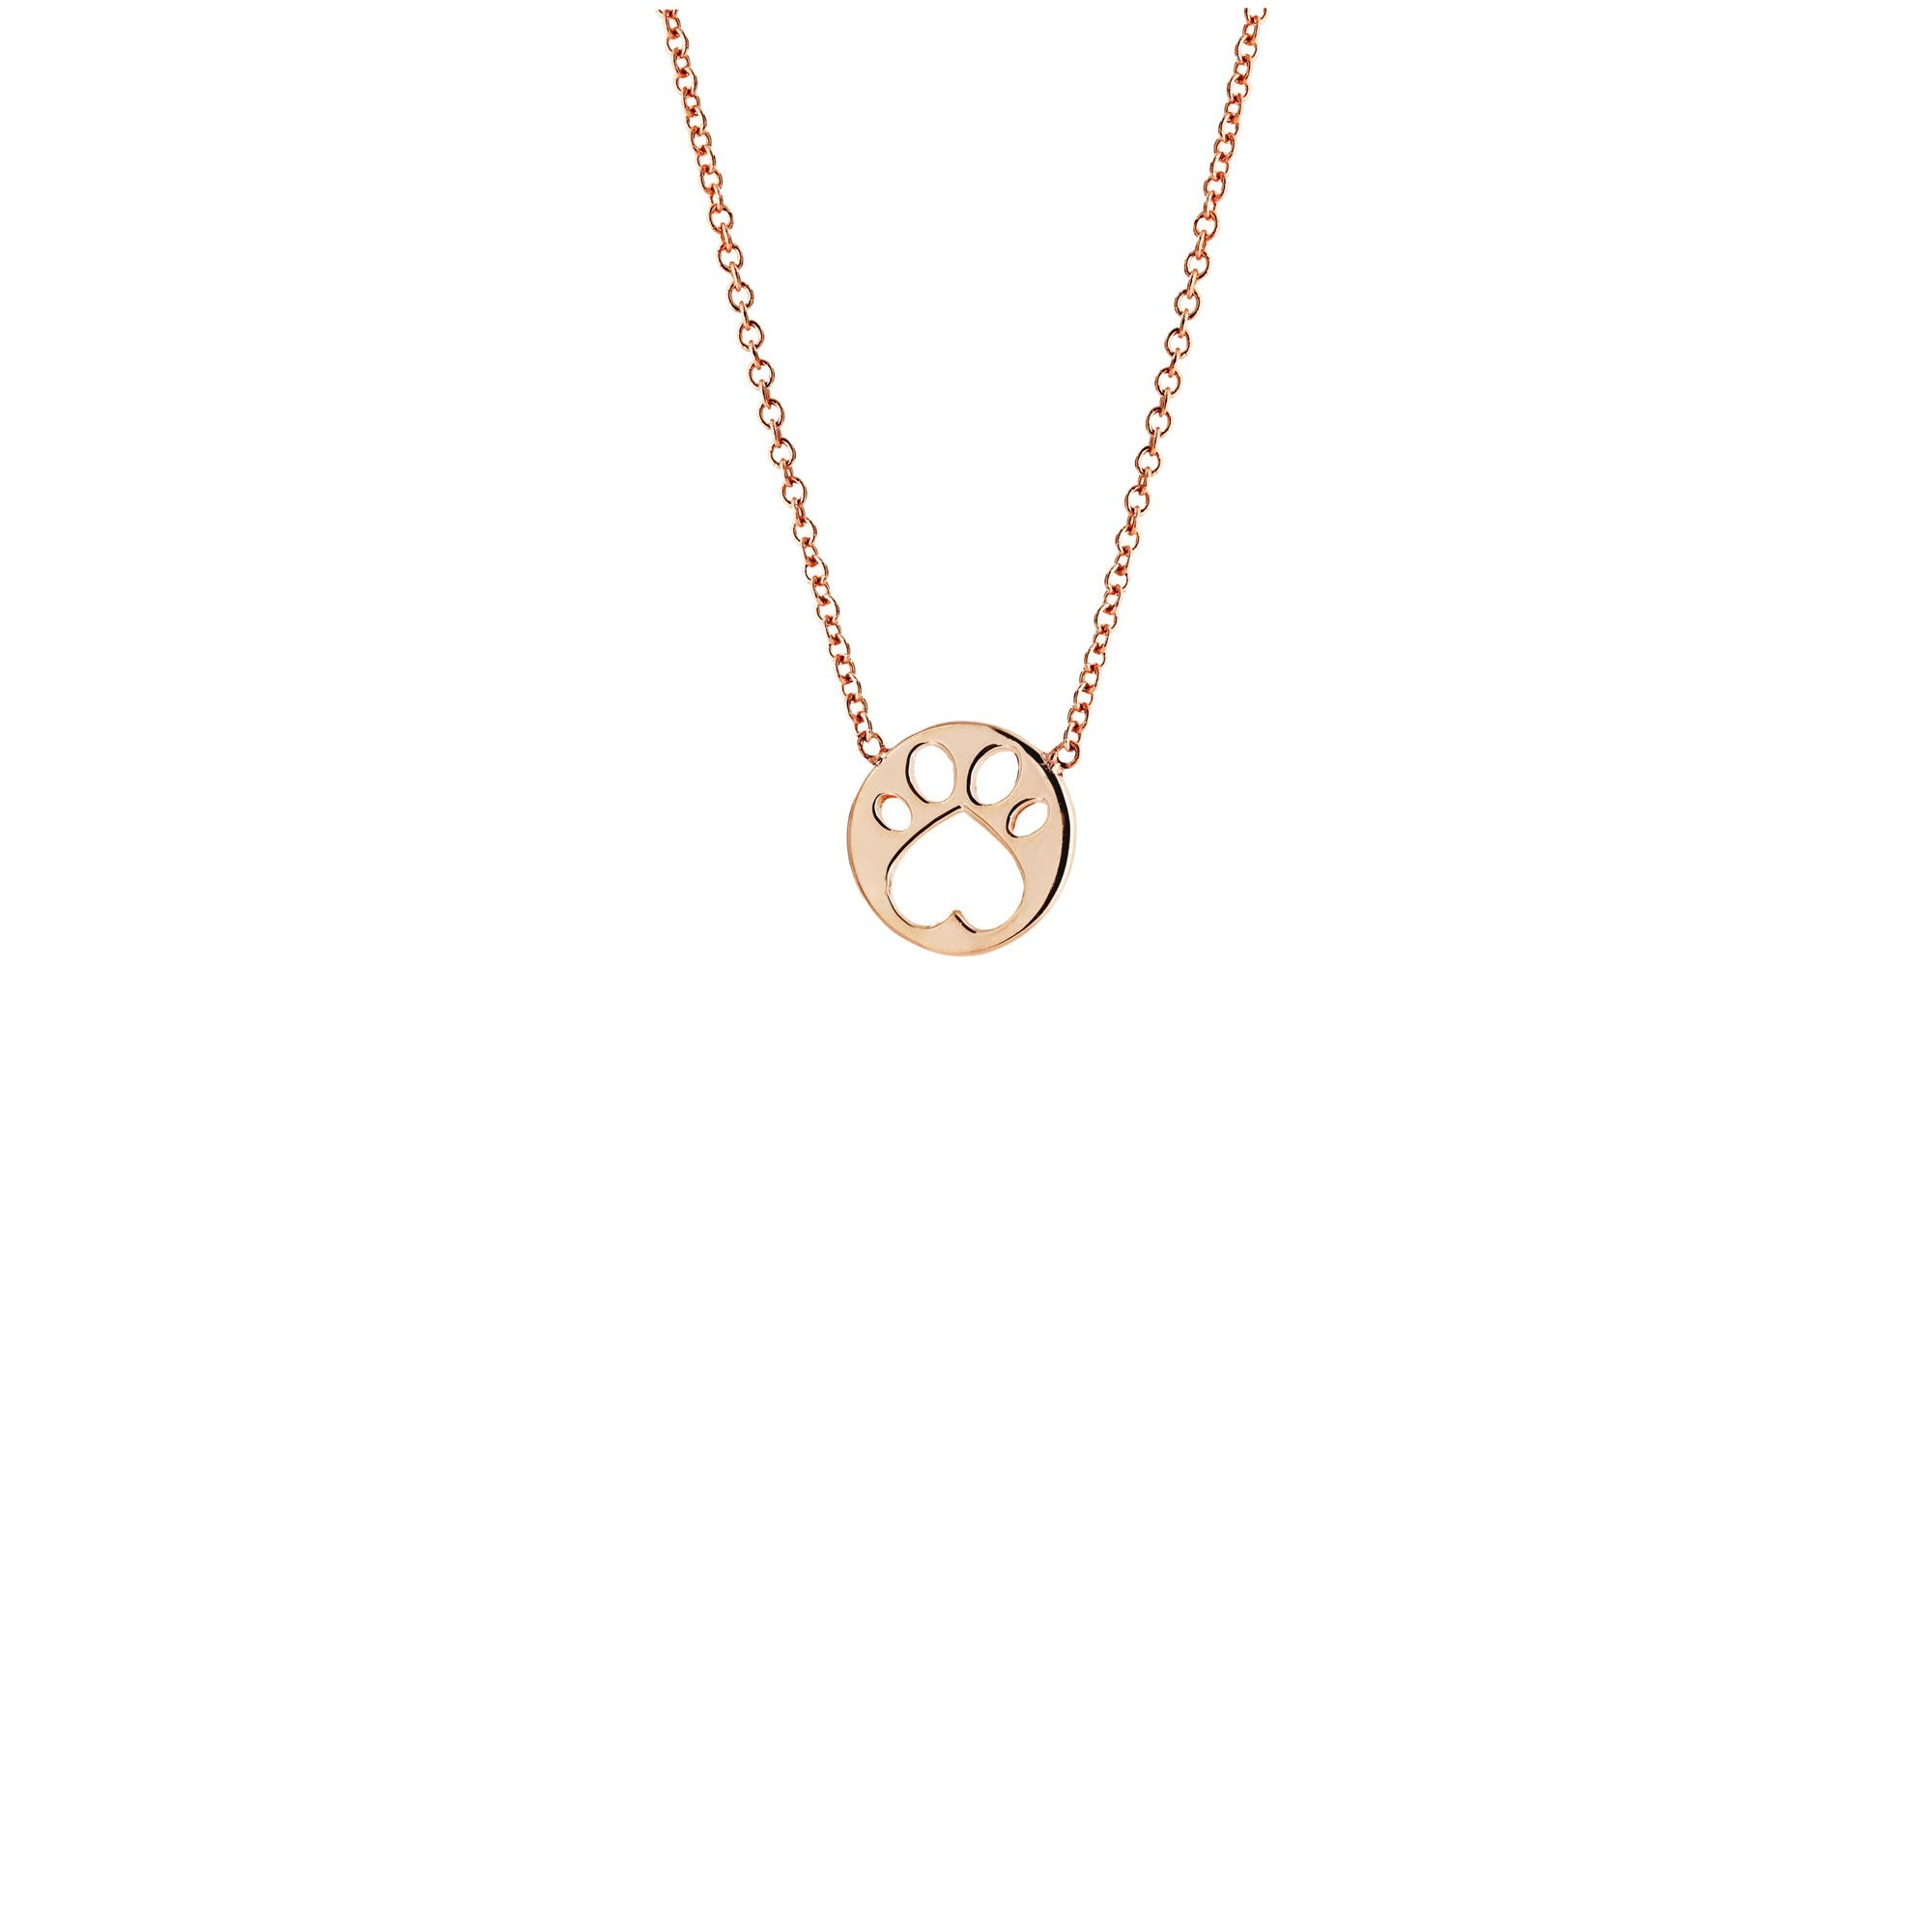 Our Cause for Paws Mini Paw Pendant Necklace